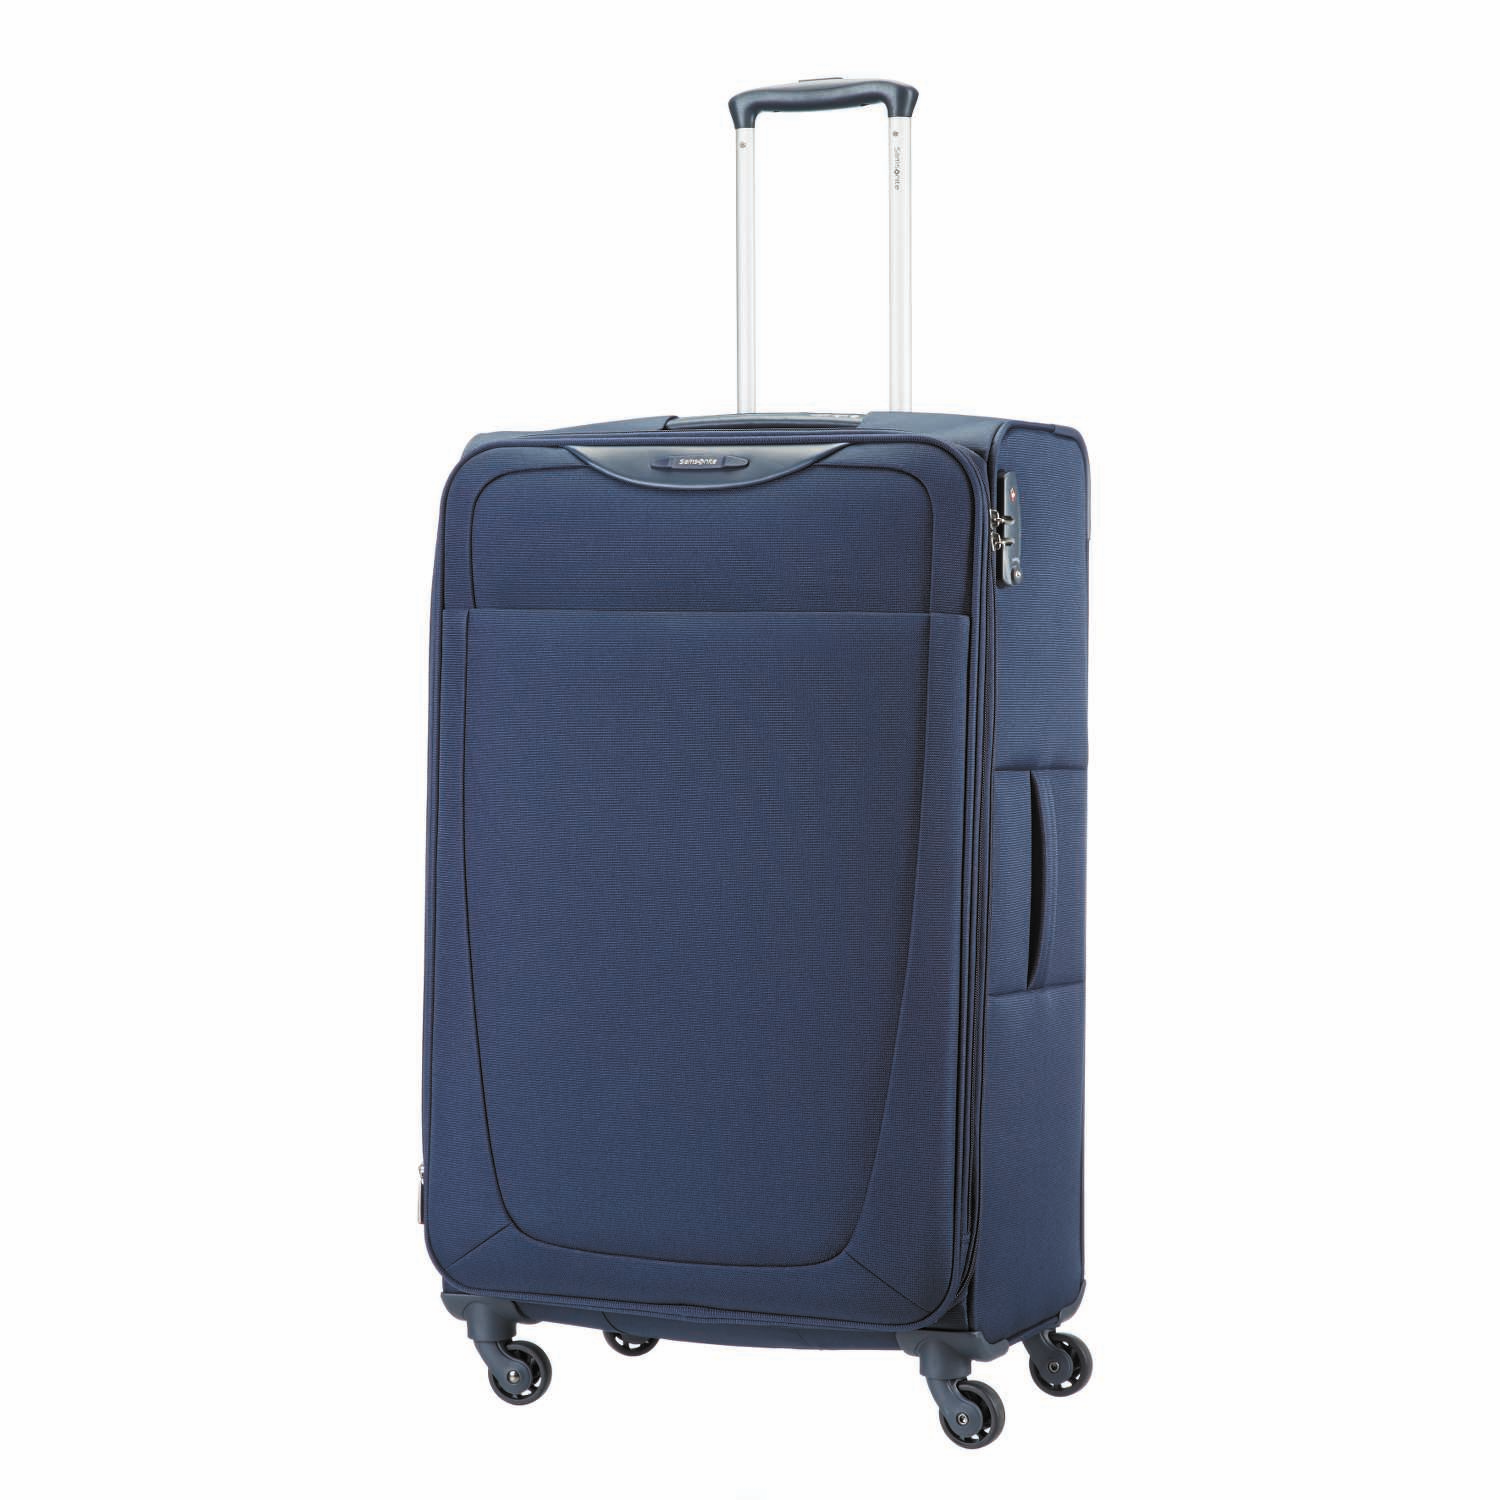 SAMSONITE (TRAVEL) - Βαλίτσα BASEHITS SPINNER 77/28 Samsonite μπλε